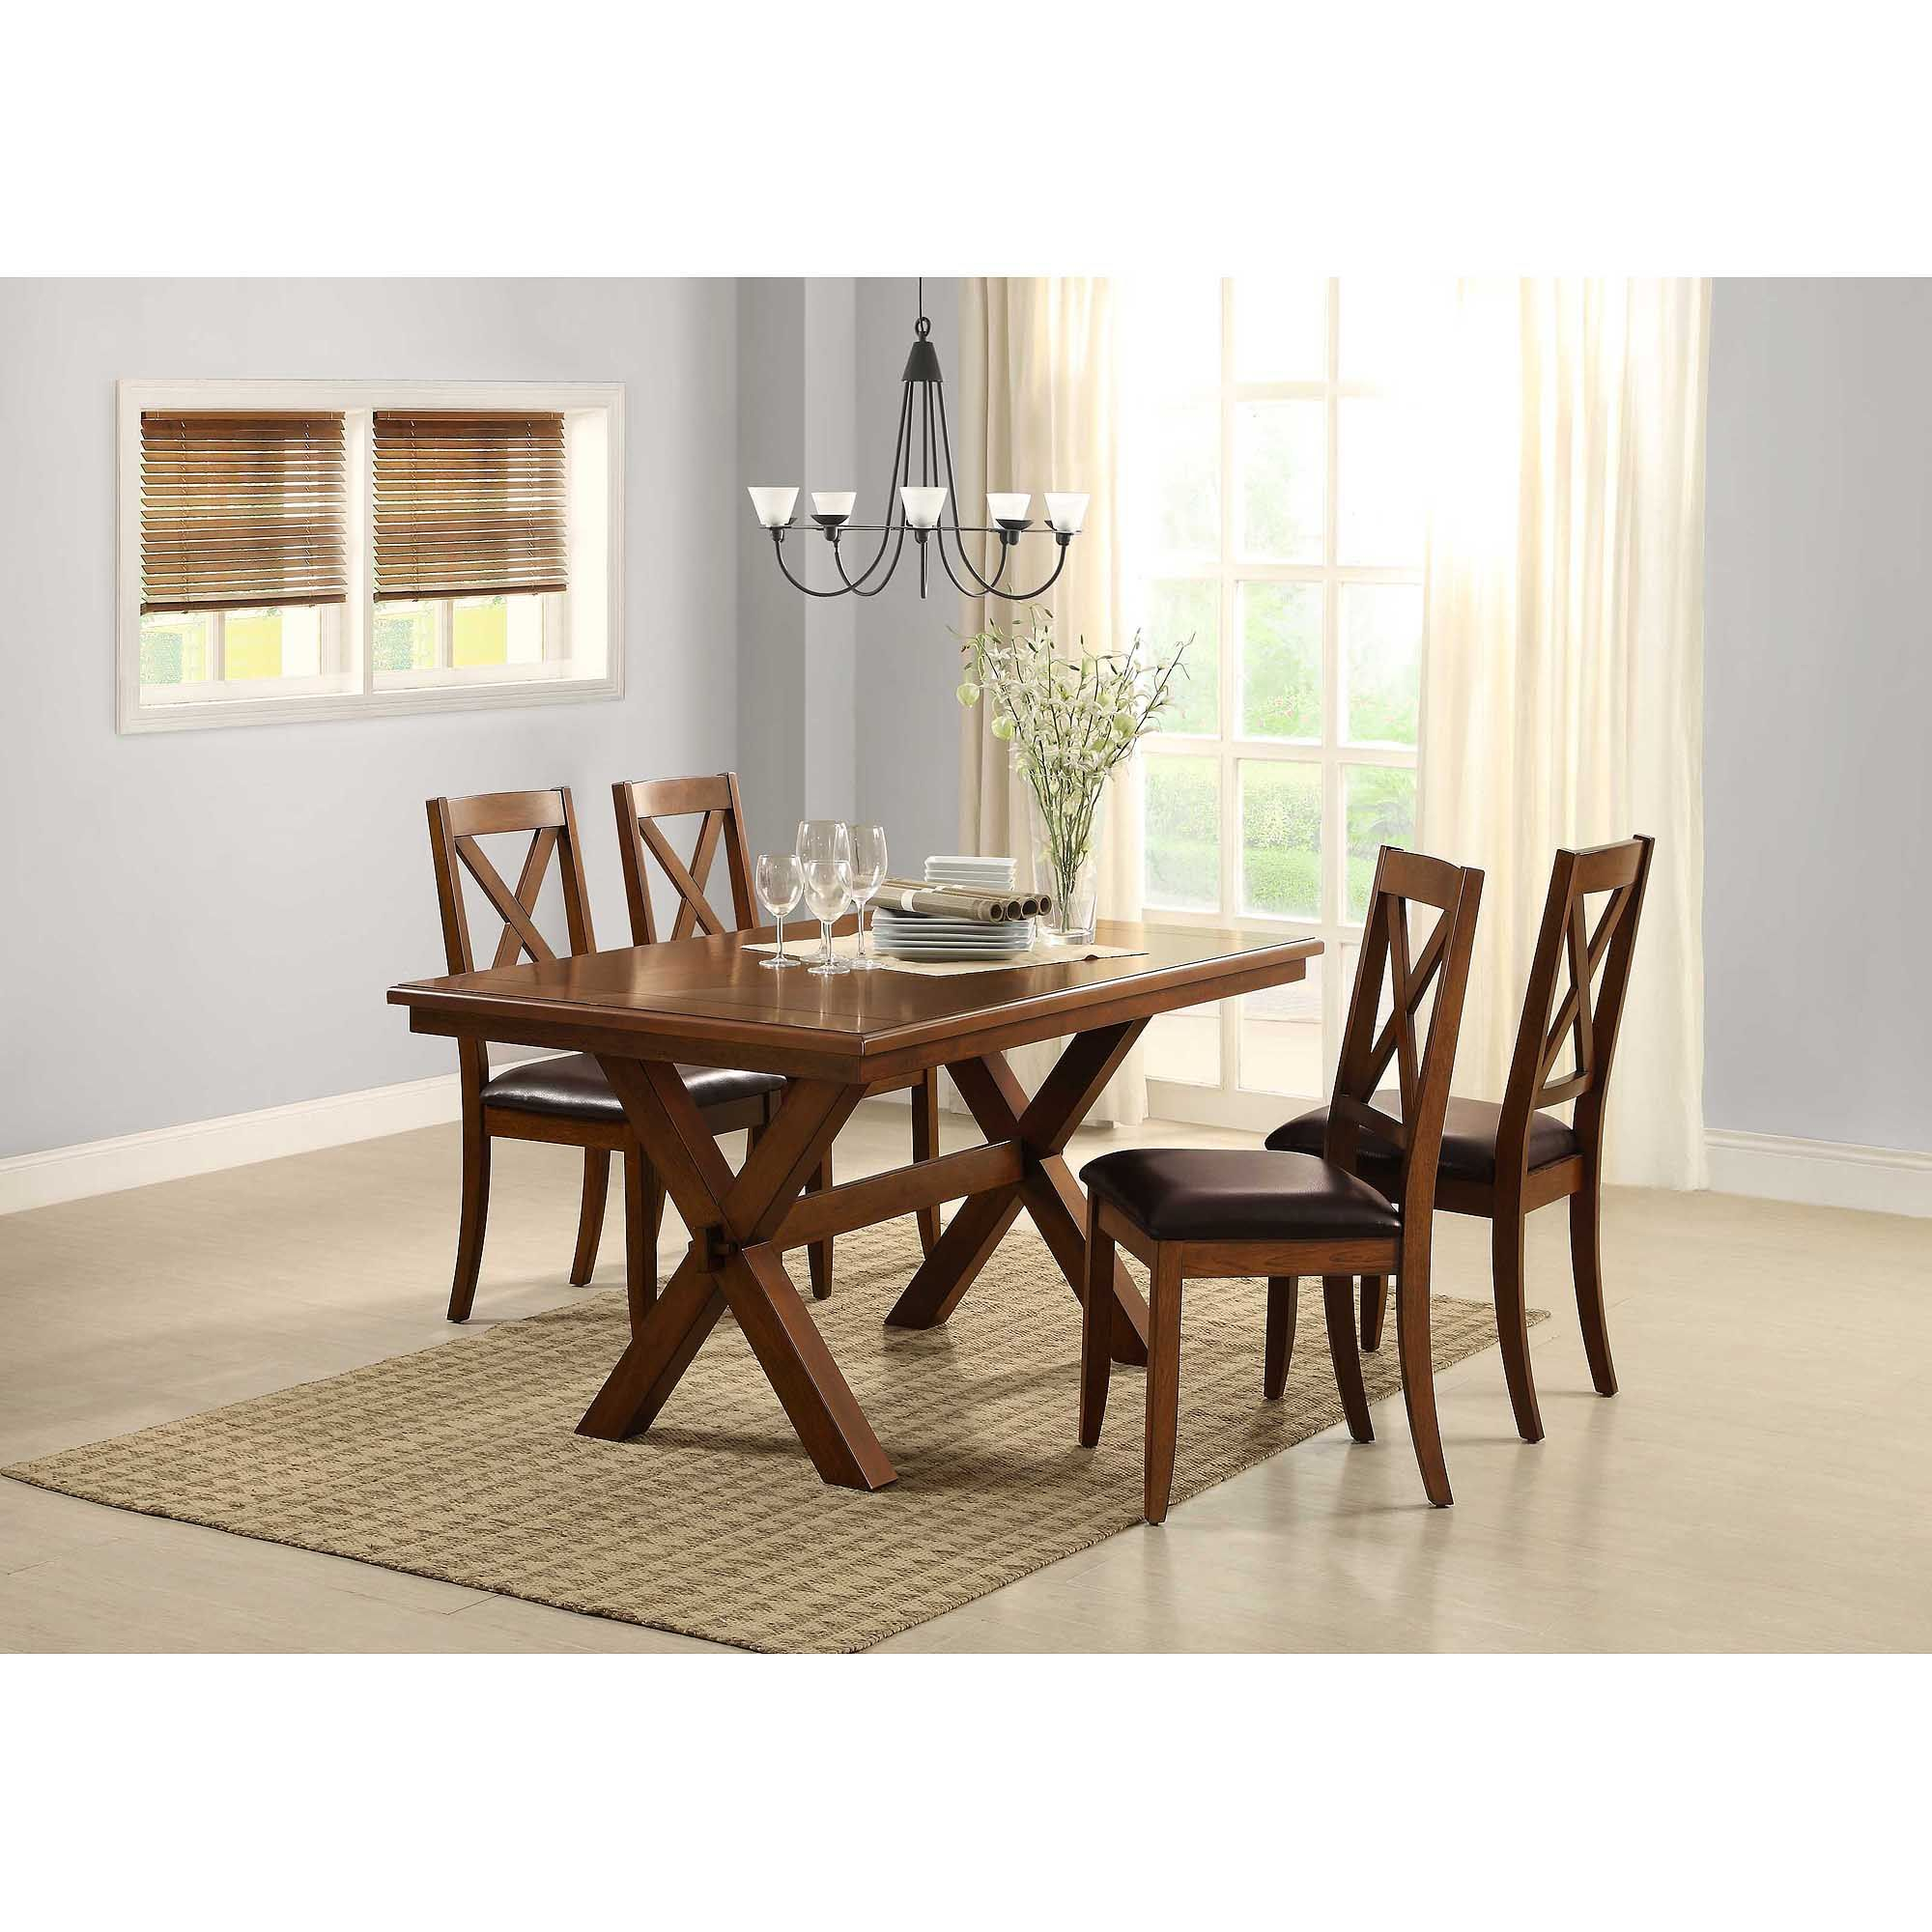 Better Homes Gardens Maddox Crossing Dining Table Walmart Com Round Dining Table Sets Oak Dining Room Round Dining Table